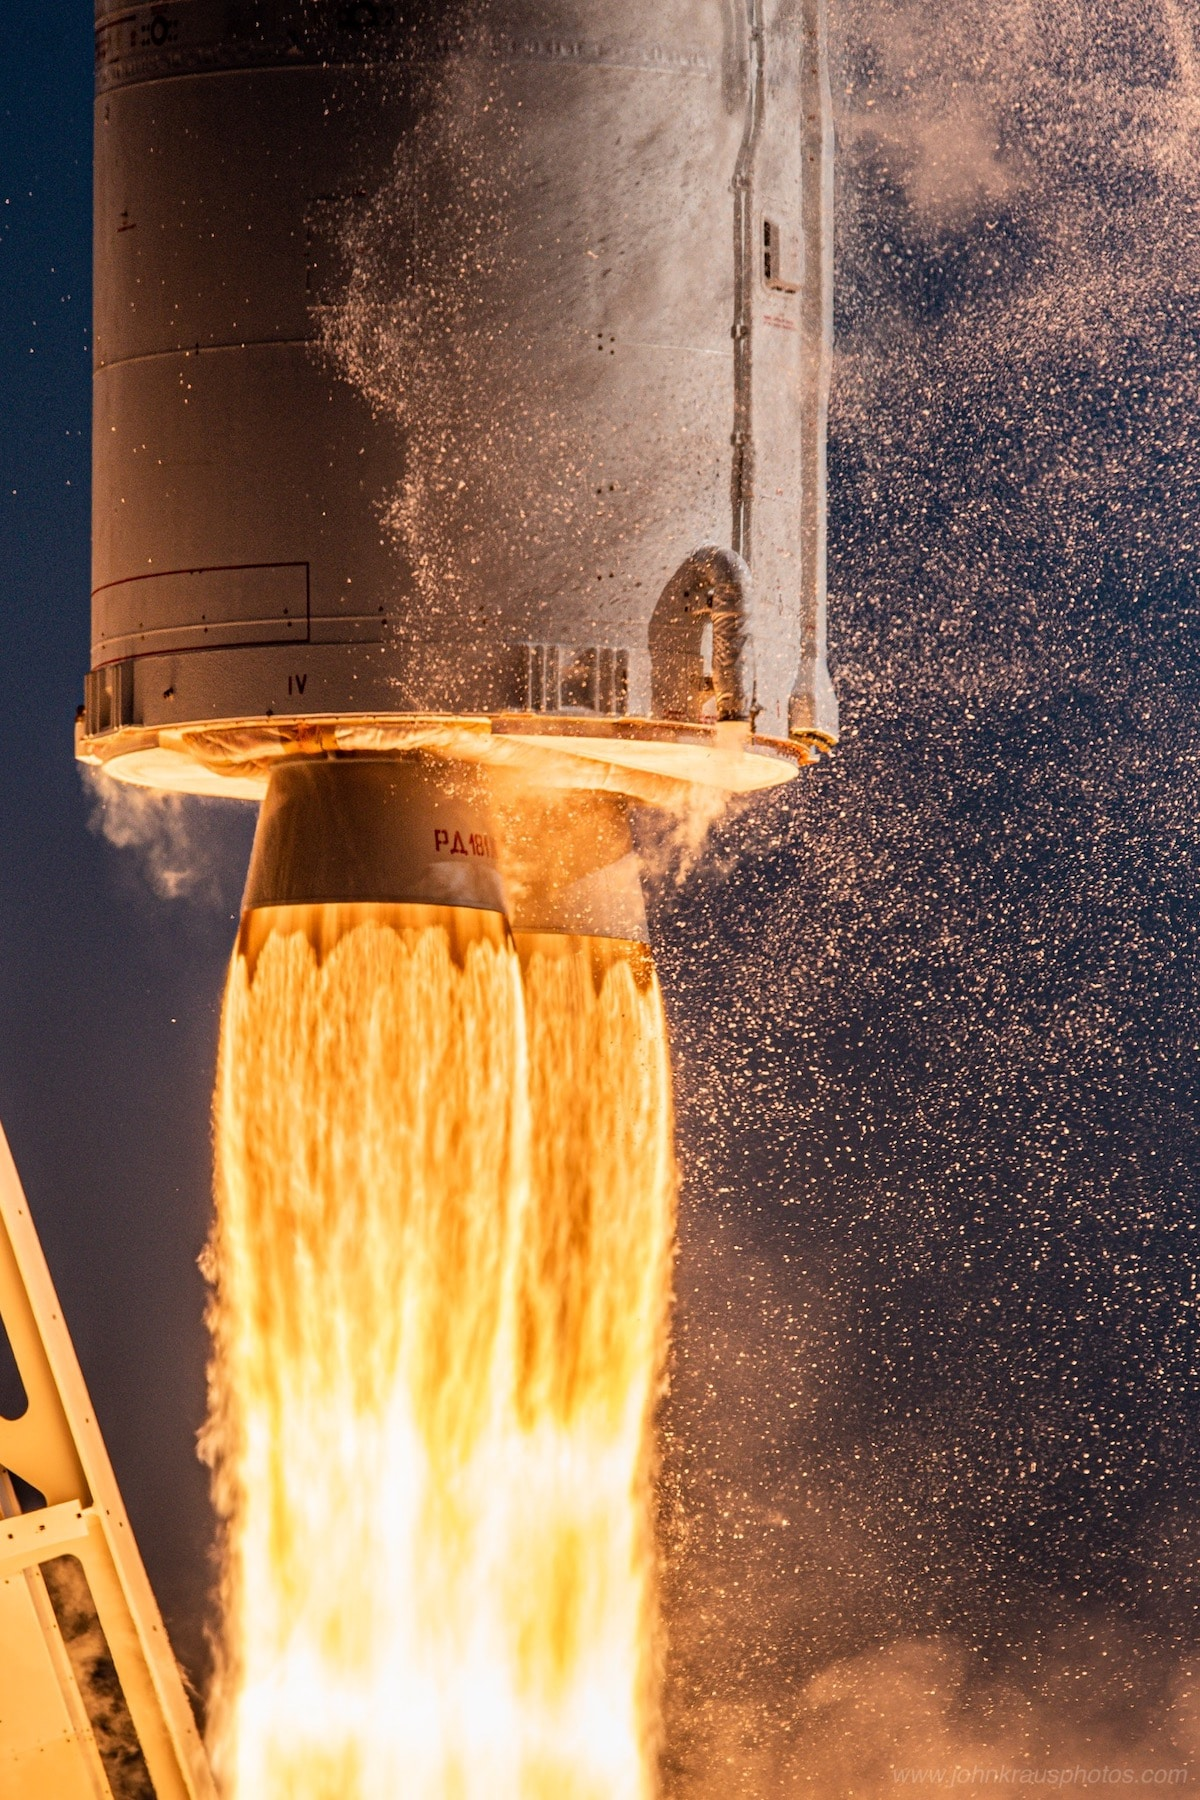 Antares Rocket Launch by John Kraus